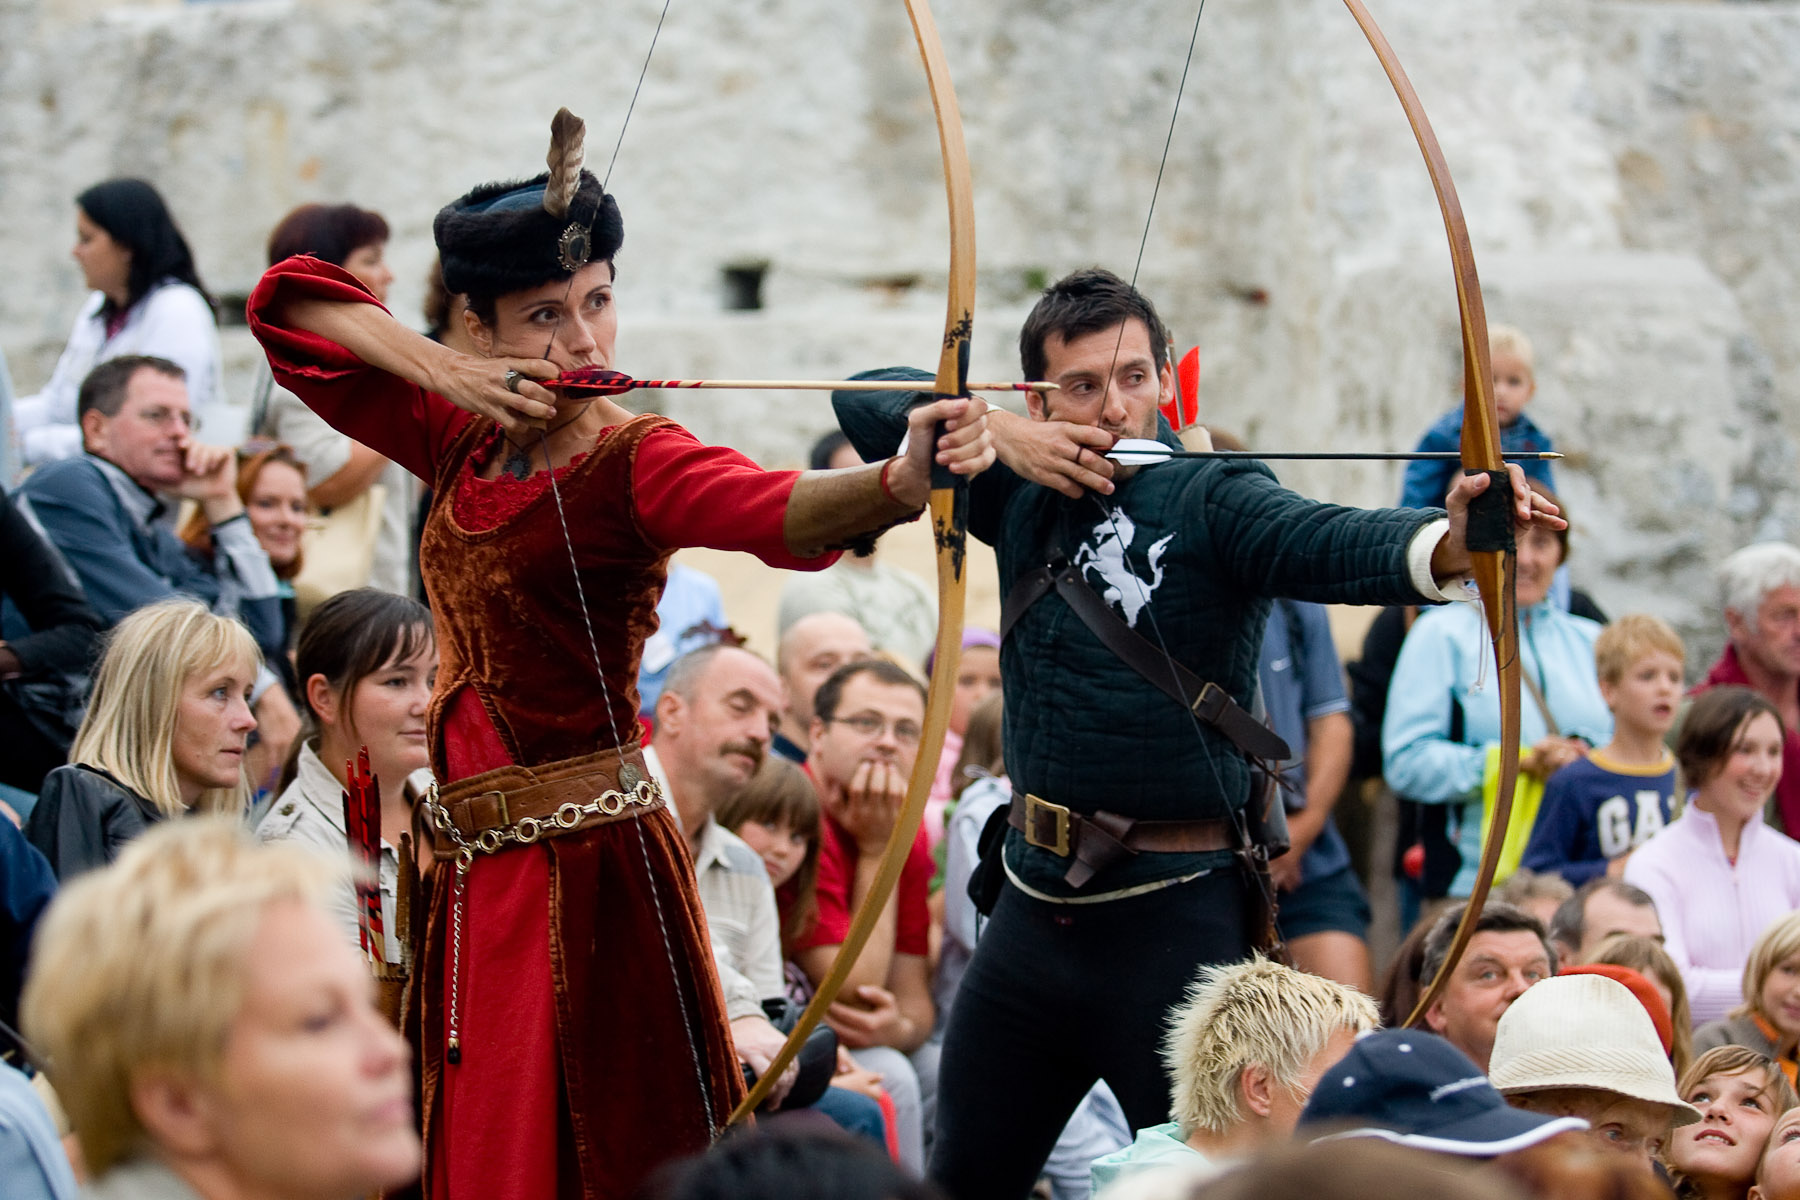 Archers perform at the castle of Celje, Slovenia, on August 30, 2008. Archery is an essential part of Medieval events. Target shooting is performed by skillful knights, while at the same time recreational target shooting is organized for visitors.